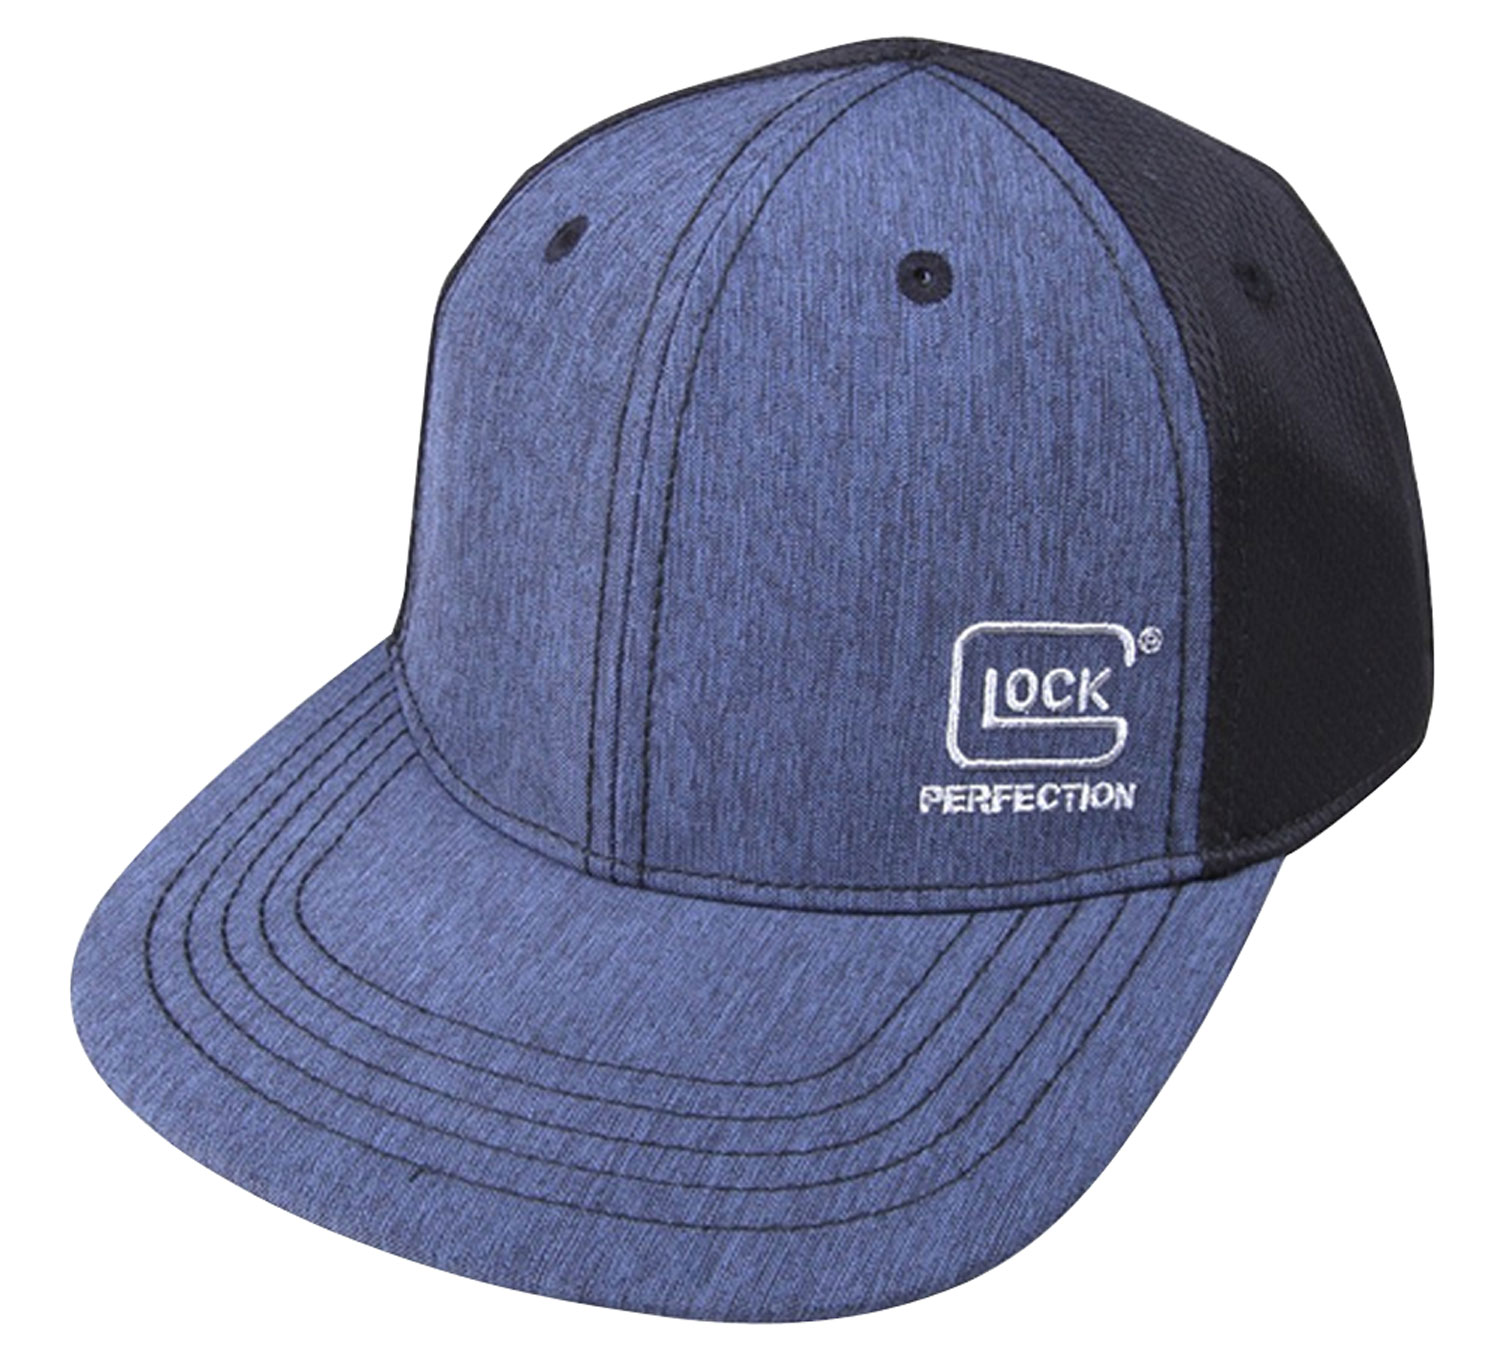 Glock AS10080 Pro-Curve  Hat Black/Navy Cotton/Mesh Velcro